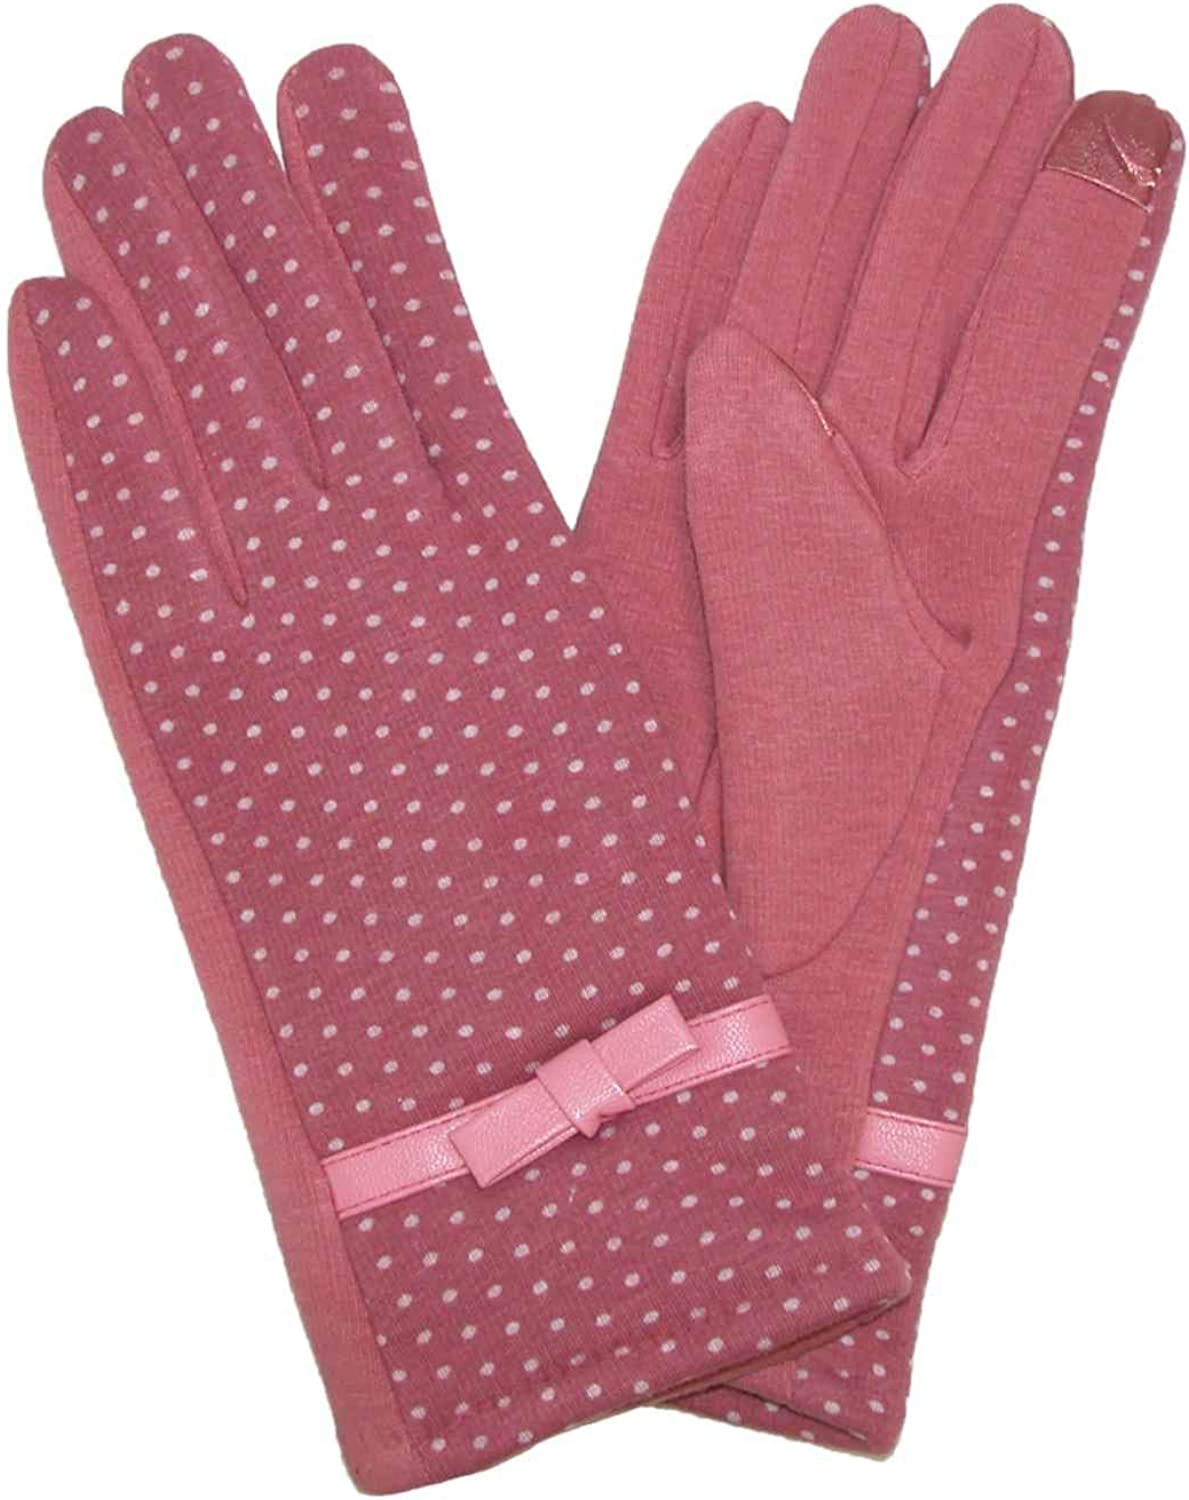 Womens Pink Polka Dot Bow Stretch Fit Texting & Tech Touchscreen Gloves